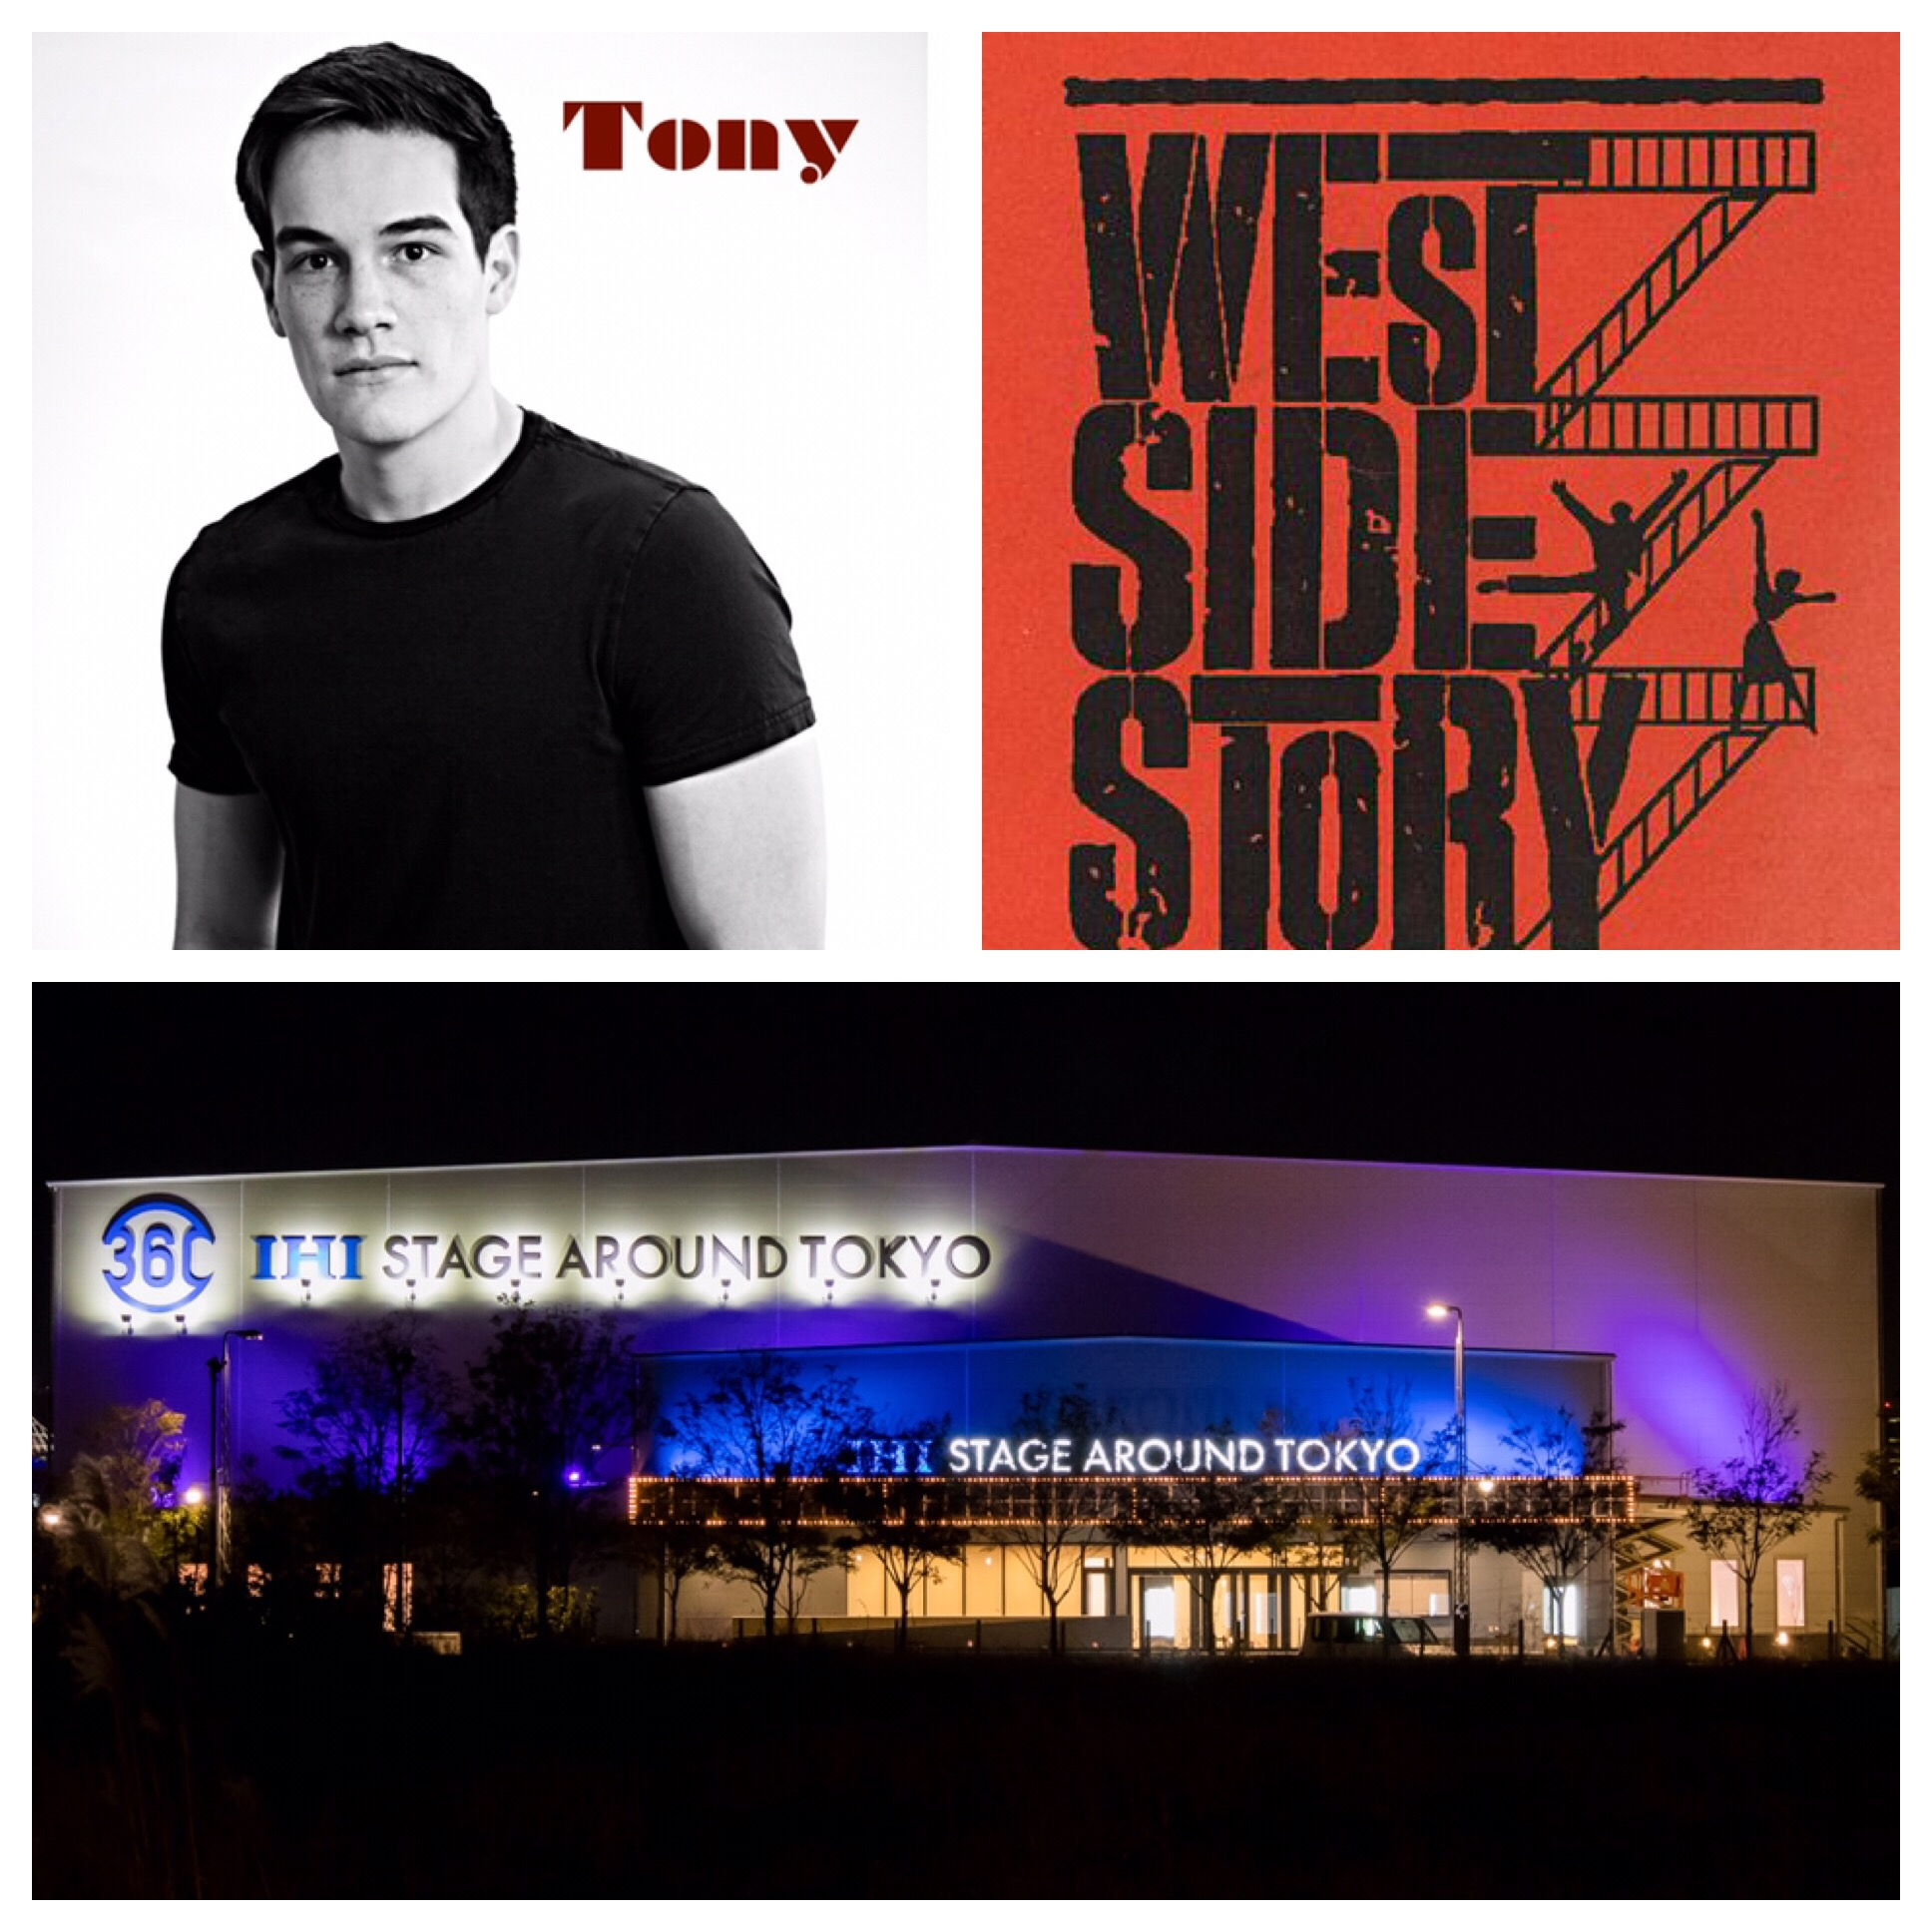 tony - Fall 2019 - Trevor will be playing Tony in the international production of West Side Story at the brand new IHI Stage Around Tokyo. The show runs August 19 - October 28.For a glimpse into this brand new innovative space, click here: http://www.playbill.com/article/new-west-side-story-with-a-rotating-auditorium-to-play-japan